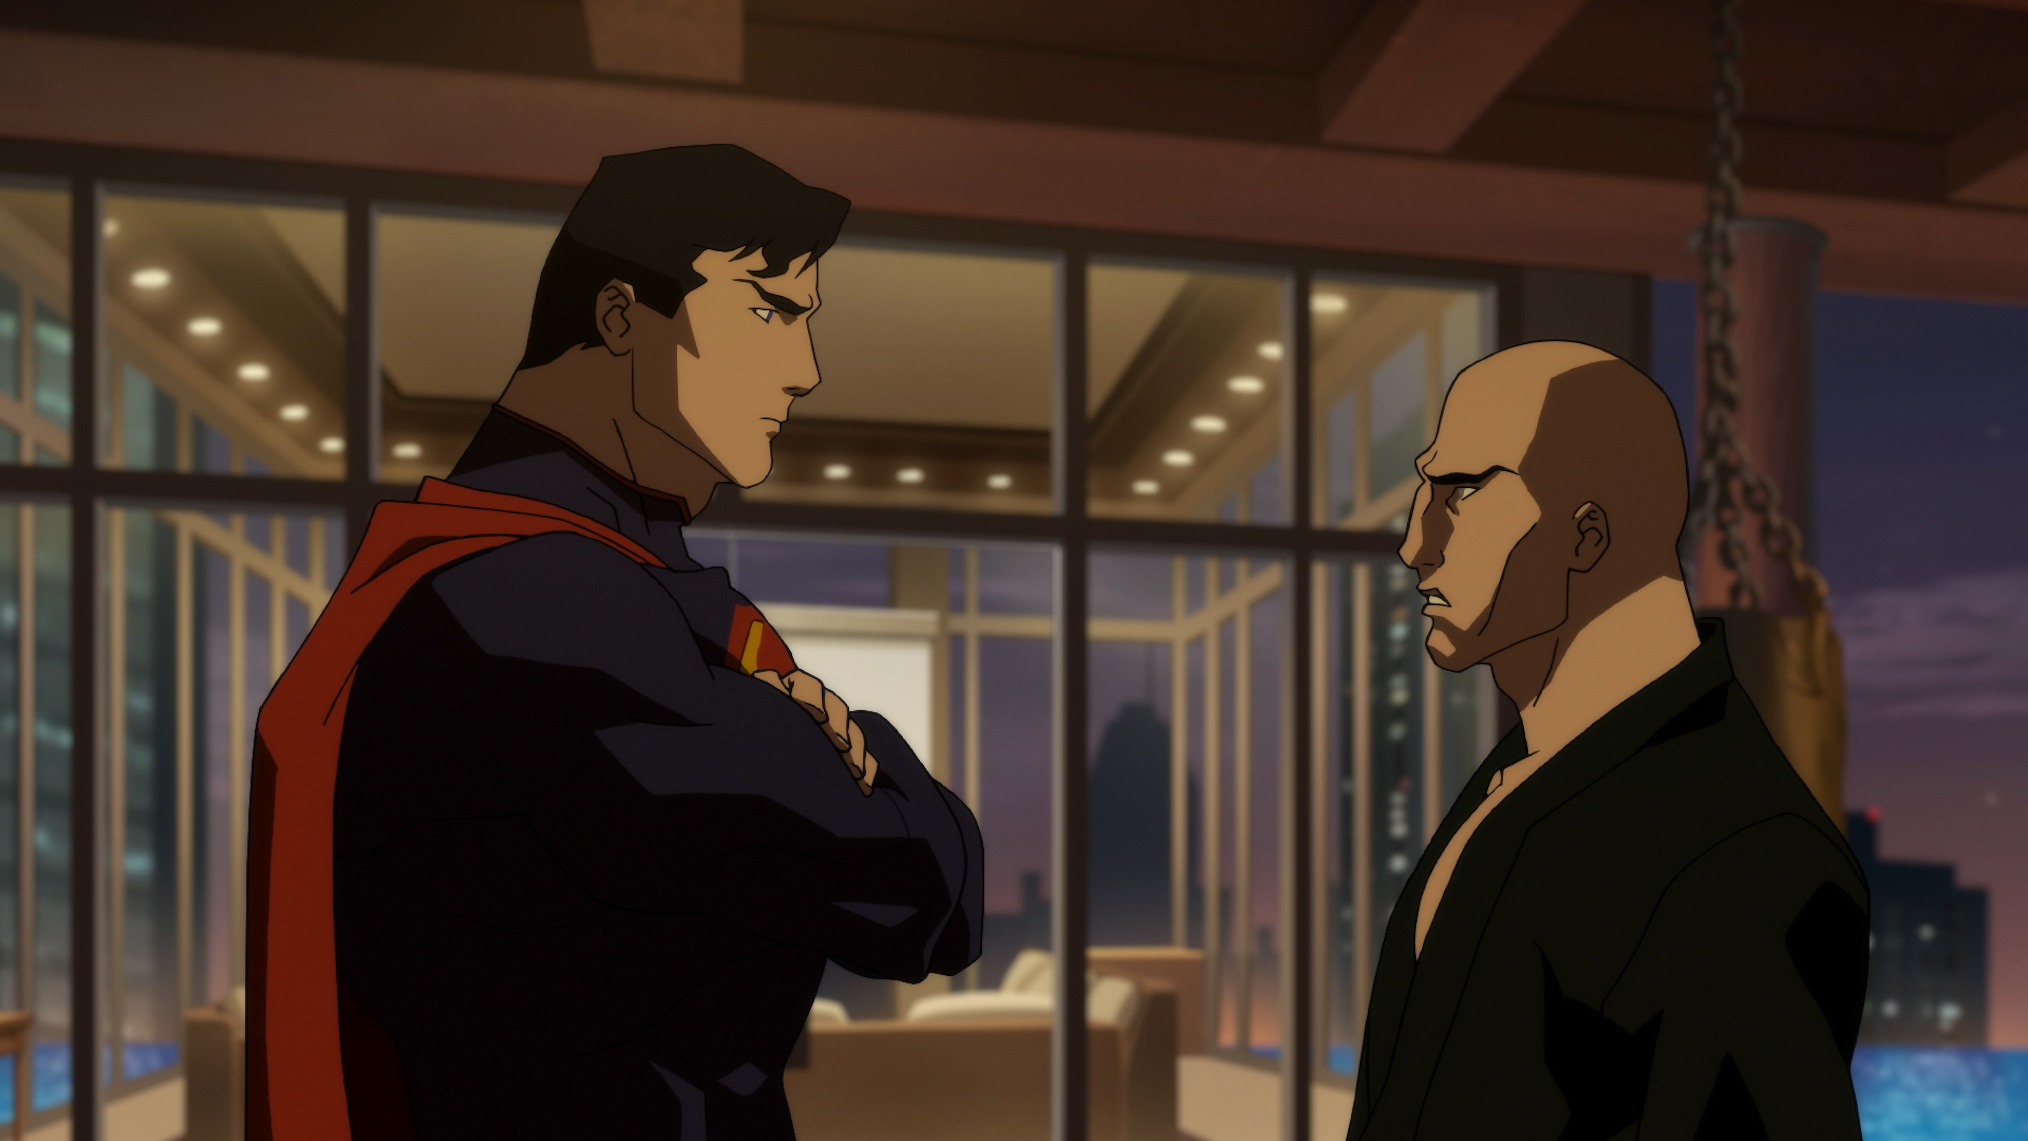 Resultado de imagem para the death of superman justice league lex luthor